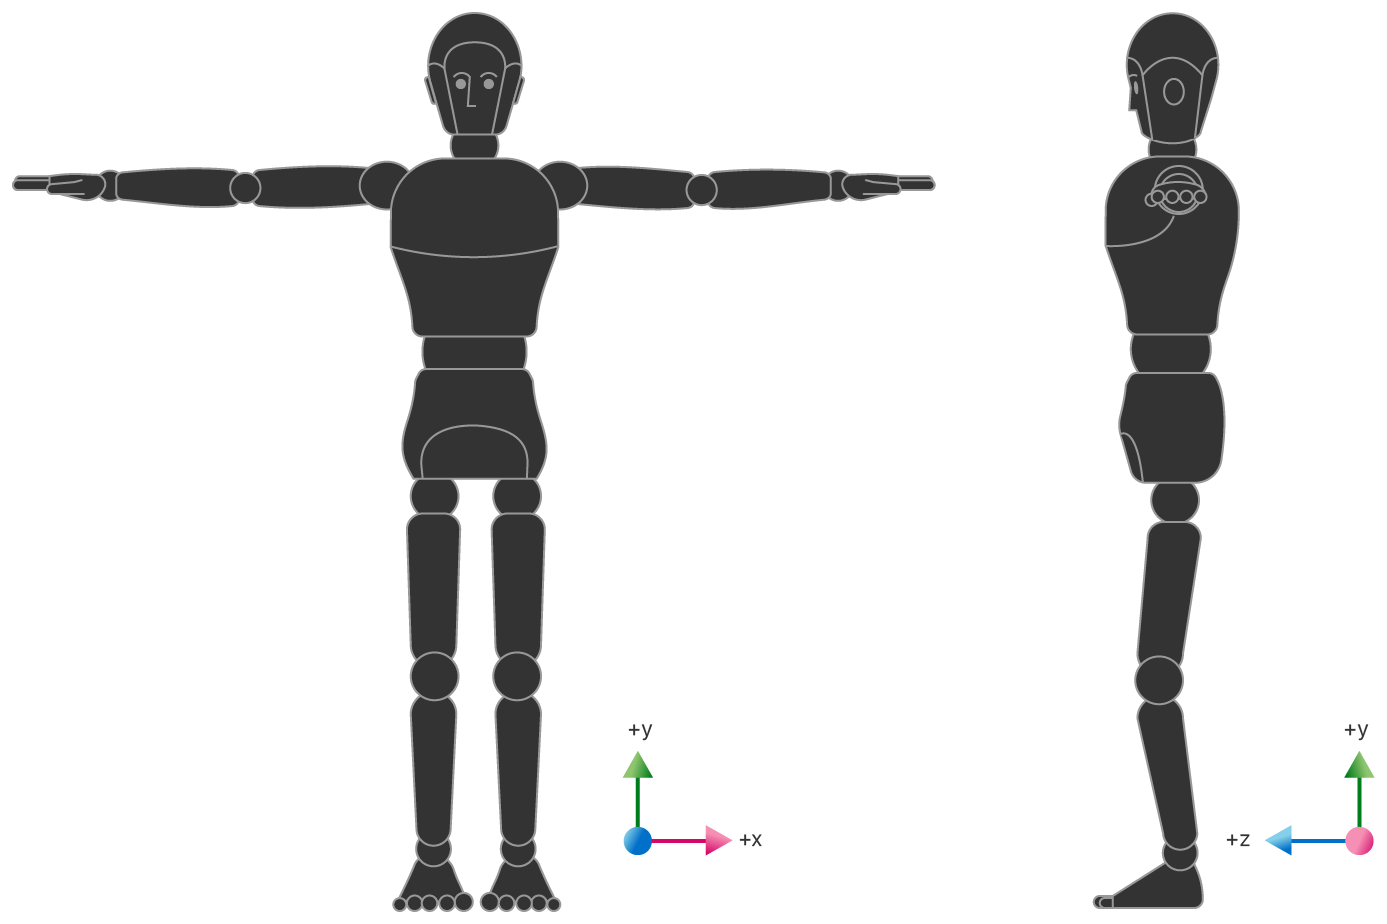 Illustration of two human-shaped robots, one facing forward in T-pose and the other in profile. For both images, the correct orientation is indicated with a right angle graph in which +Y represents up, +Z represents forward, and +X represents the character's left.